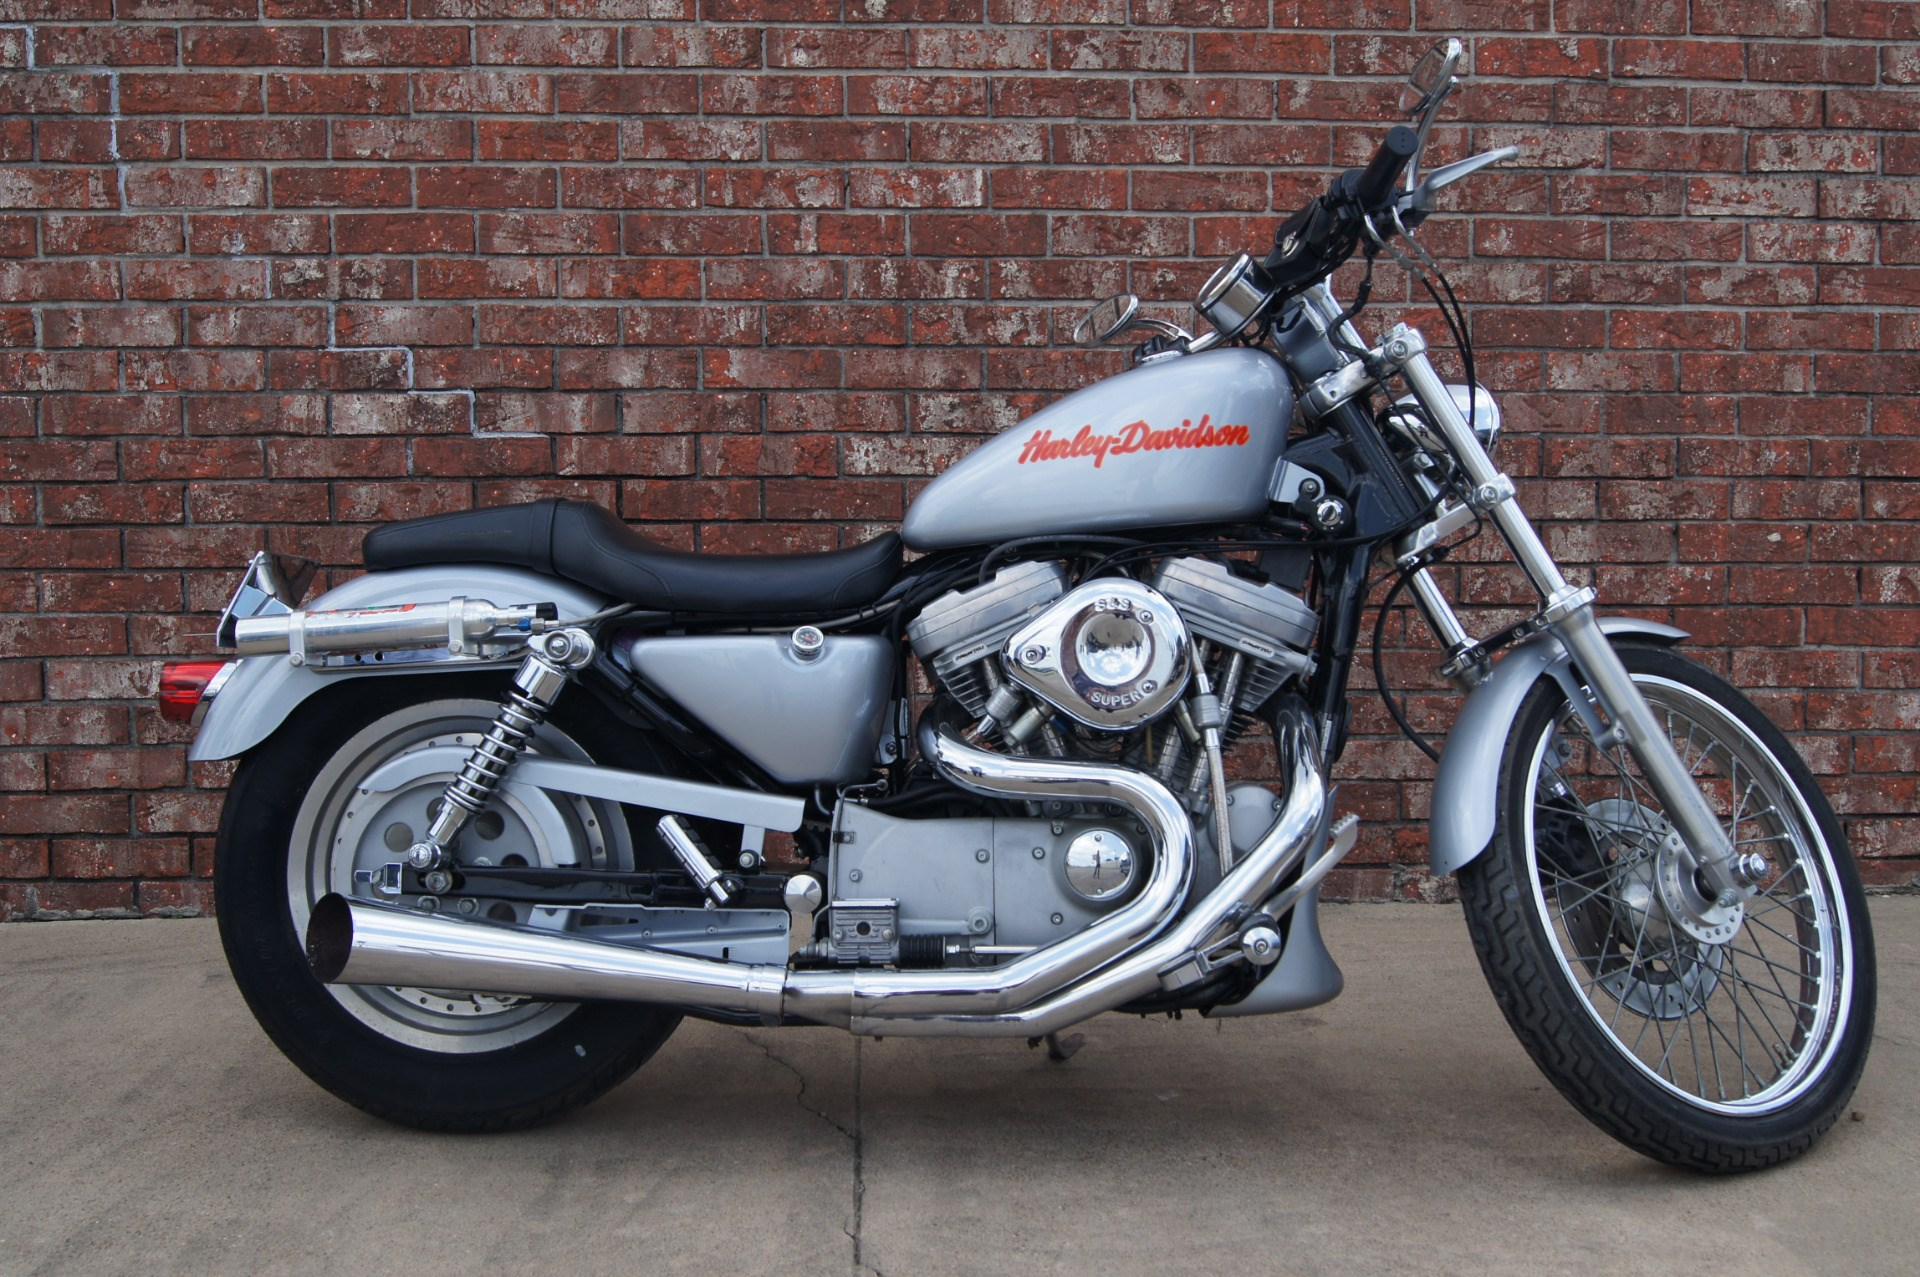 Harley Sportster For Sale >> 1999 Harley Davidson 1200 Sportster Motorcycle From Beaumont